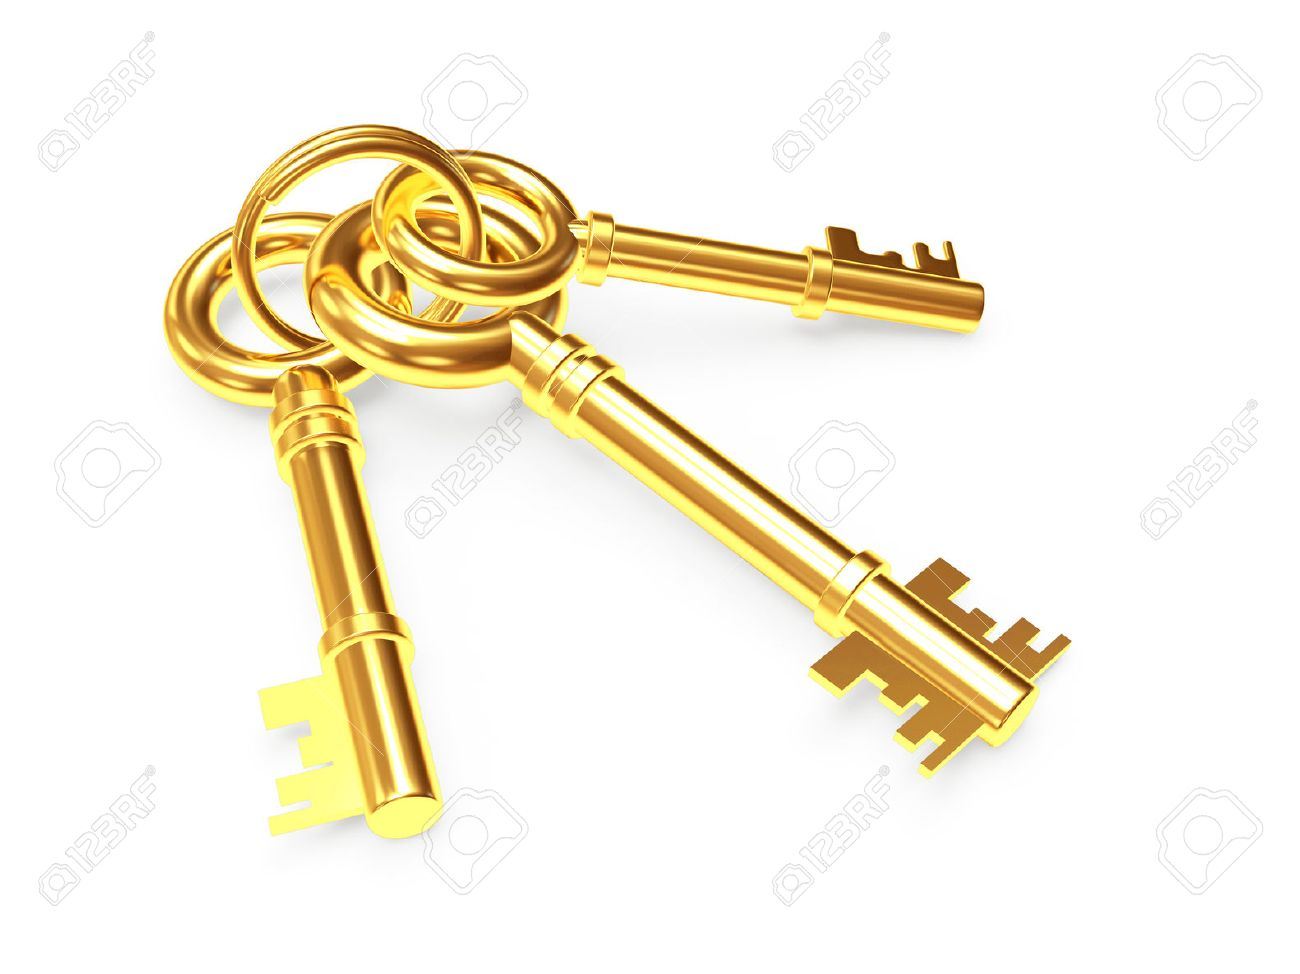 Bunch of three old golden keys isolated on white background - 50261256